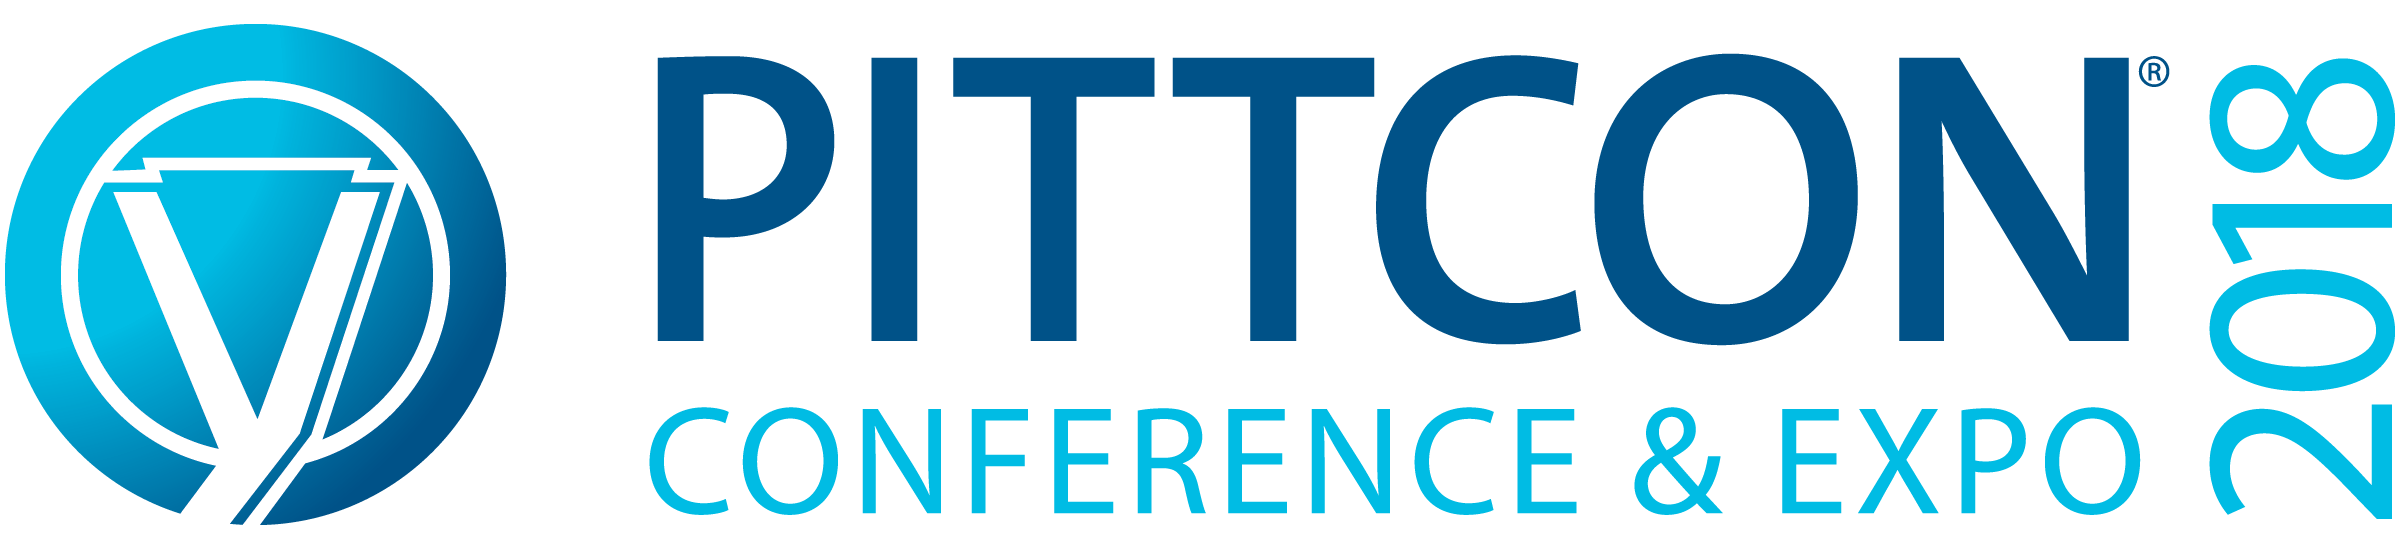 Pittcon 2018 logo